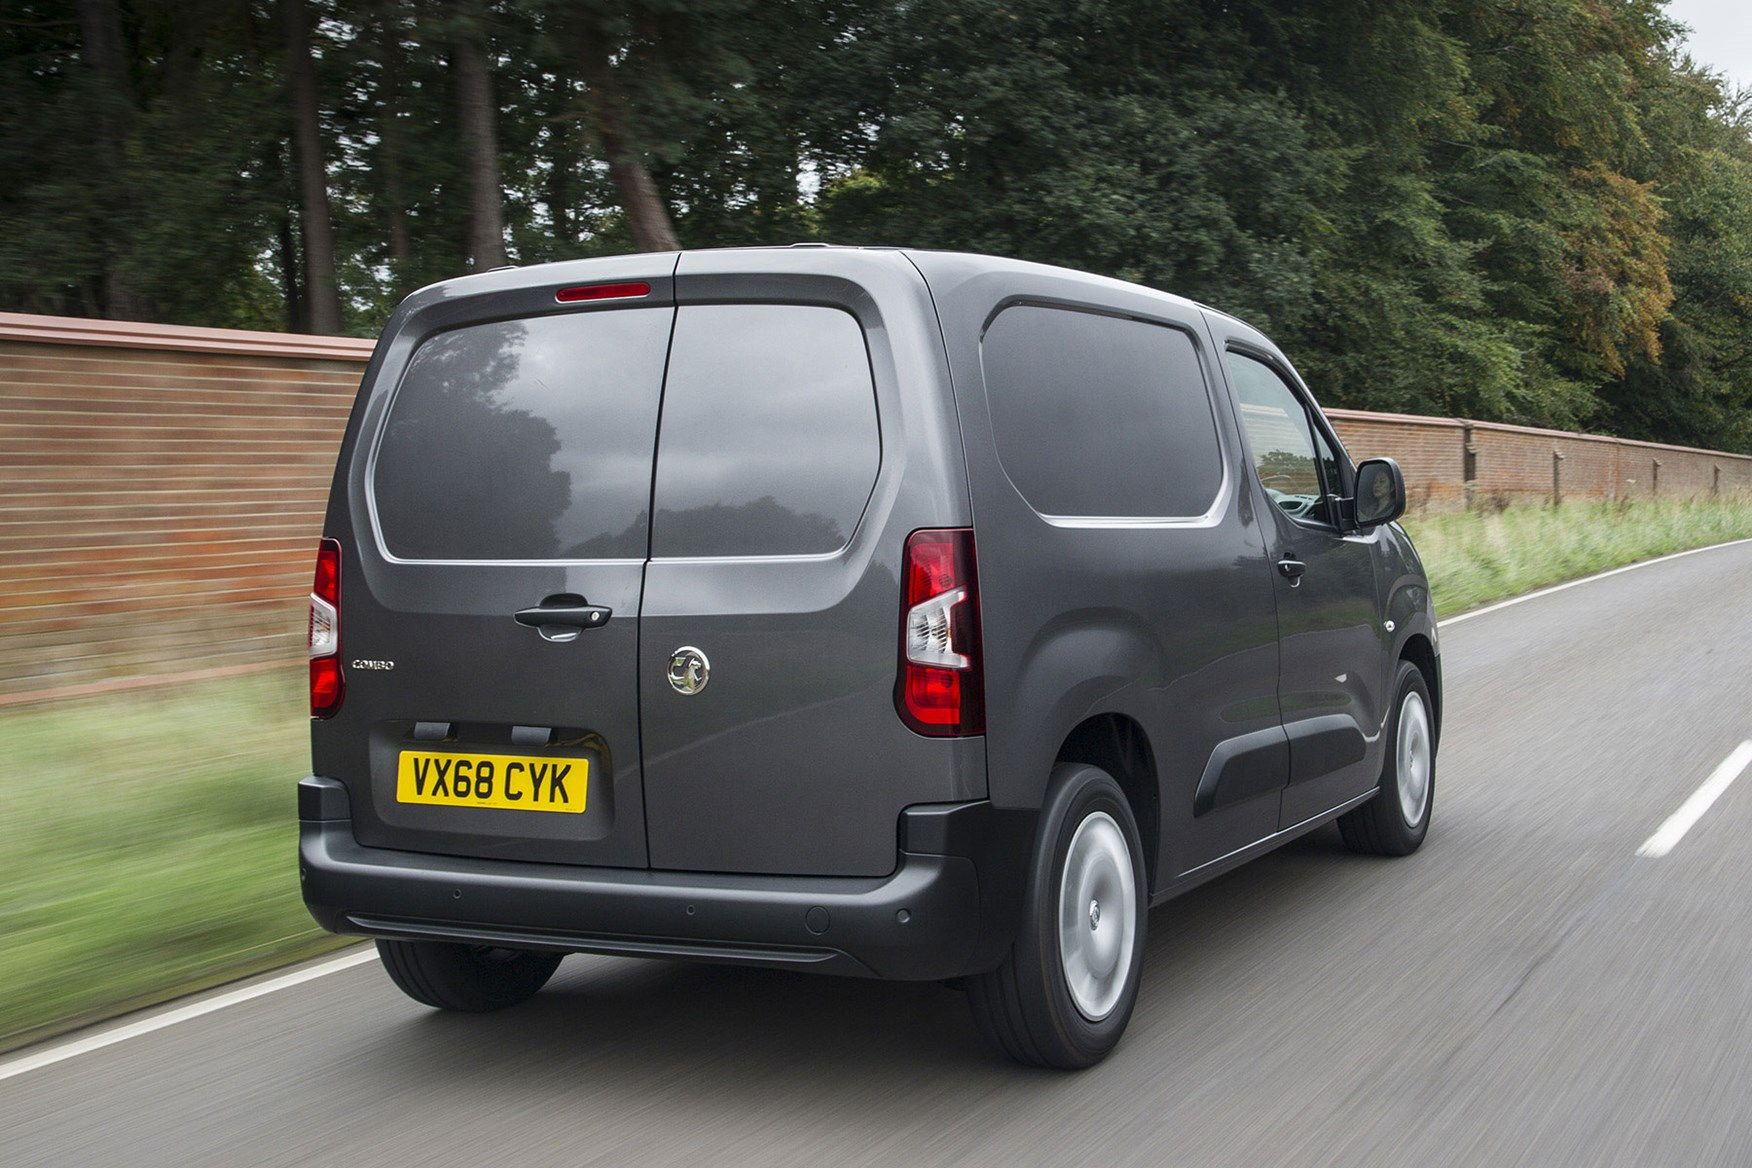 Vauxhall Combo 2019 review - grey, rear view, driving